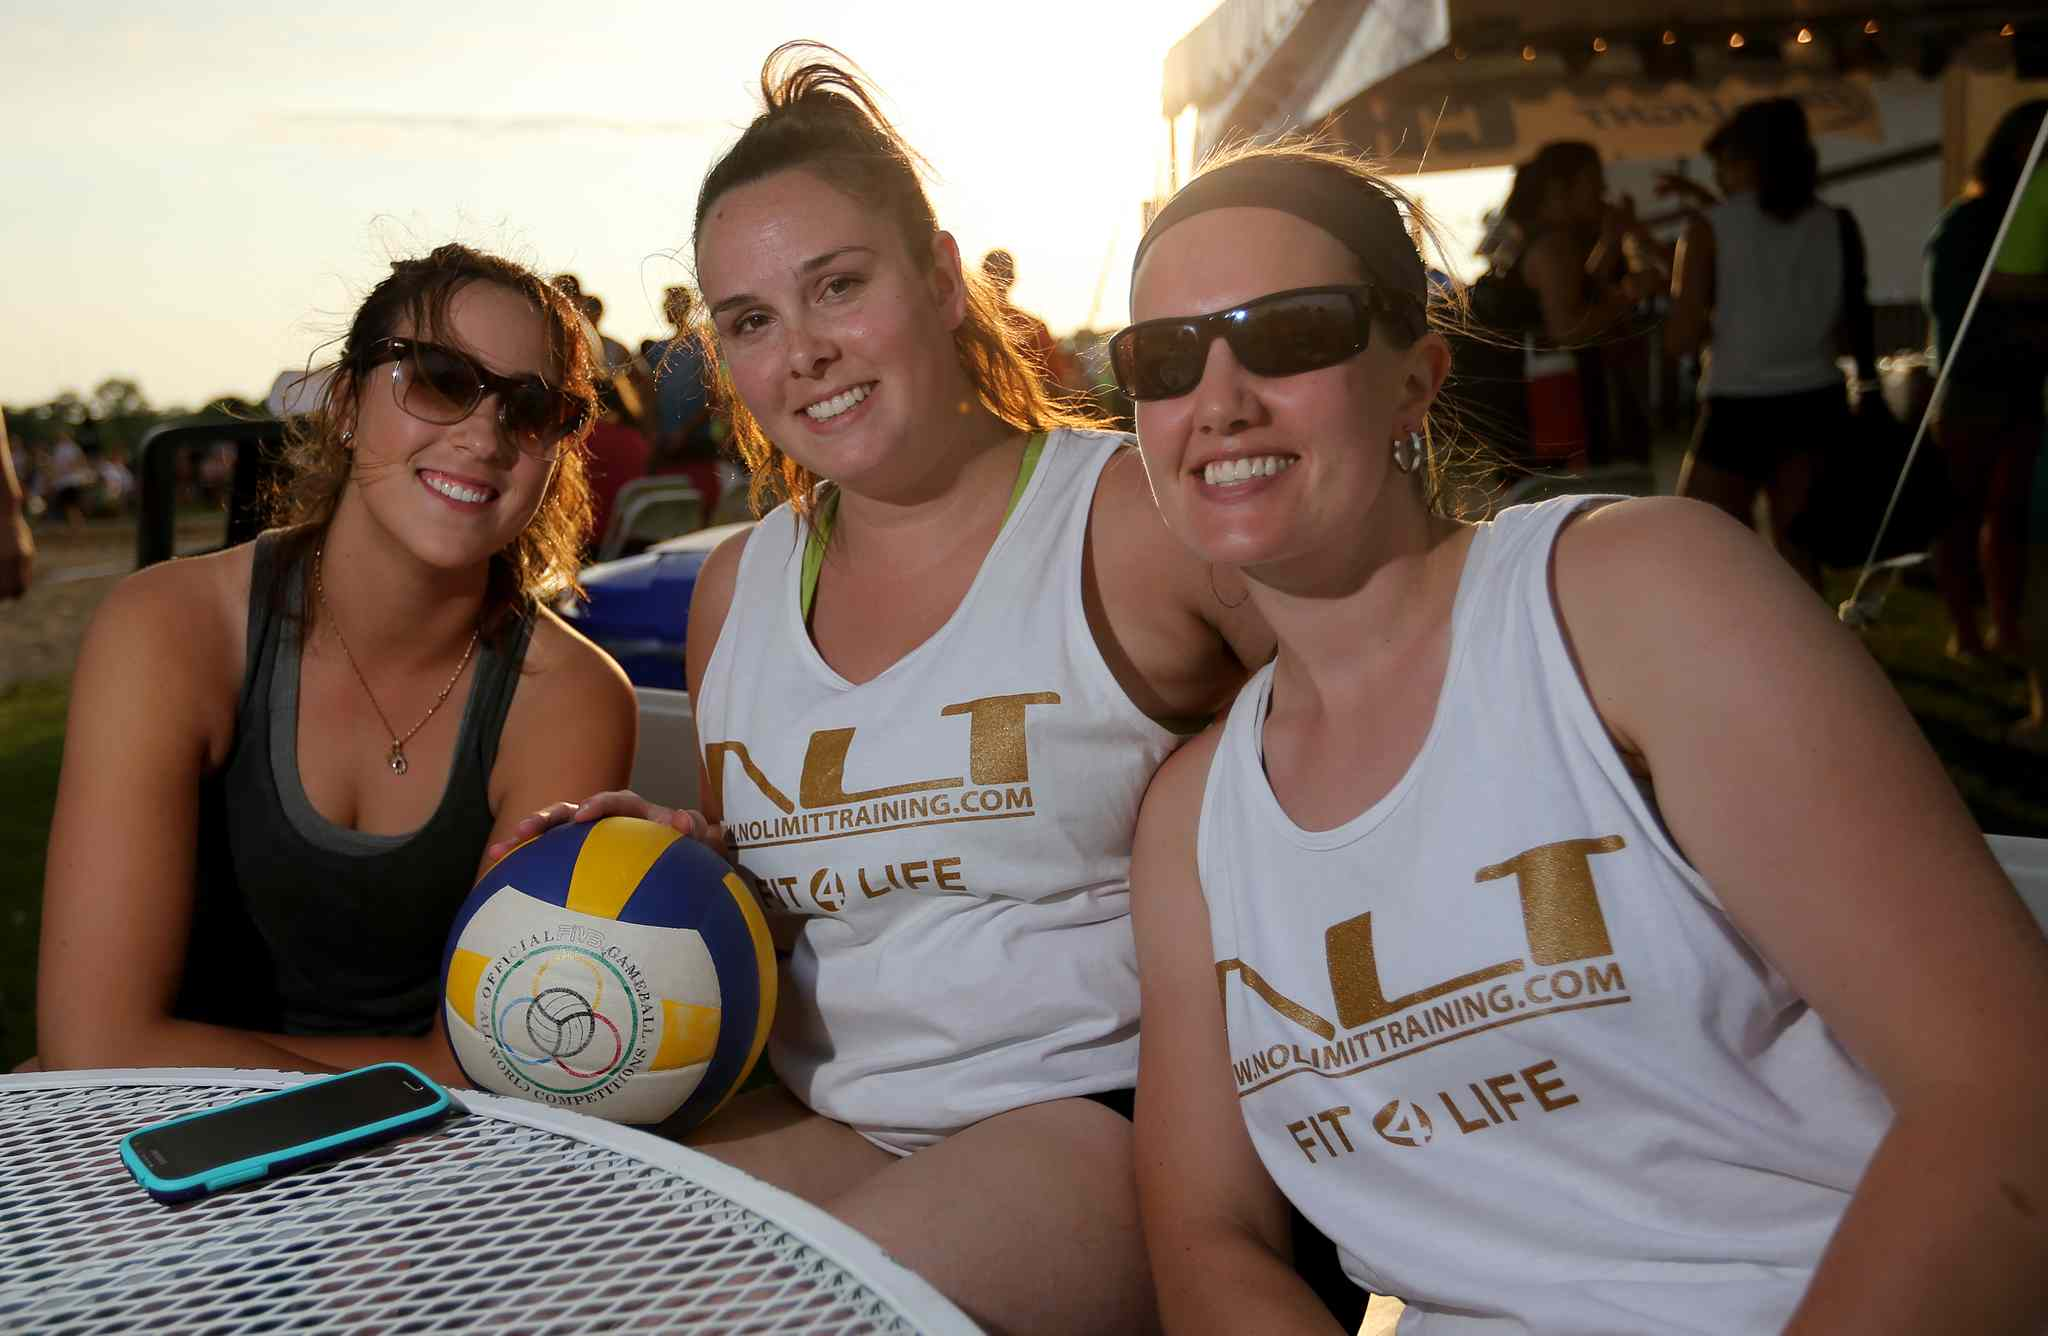 Kathryn Huebner, Kendra Hewitt and Kristen Asmundson of Team No Limit Training at the Super-Spike volleyball tournament at Maple Grove Rugby Park, Friday, July 18, 2014.